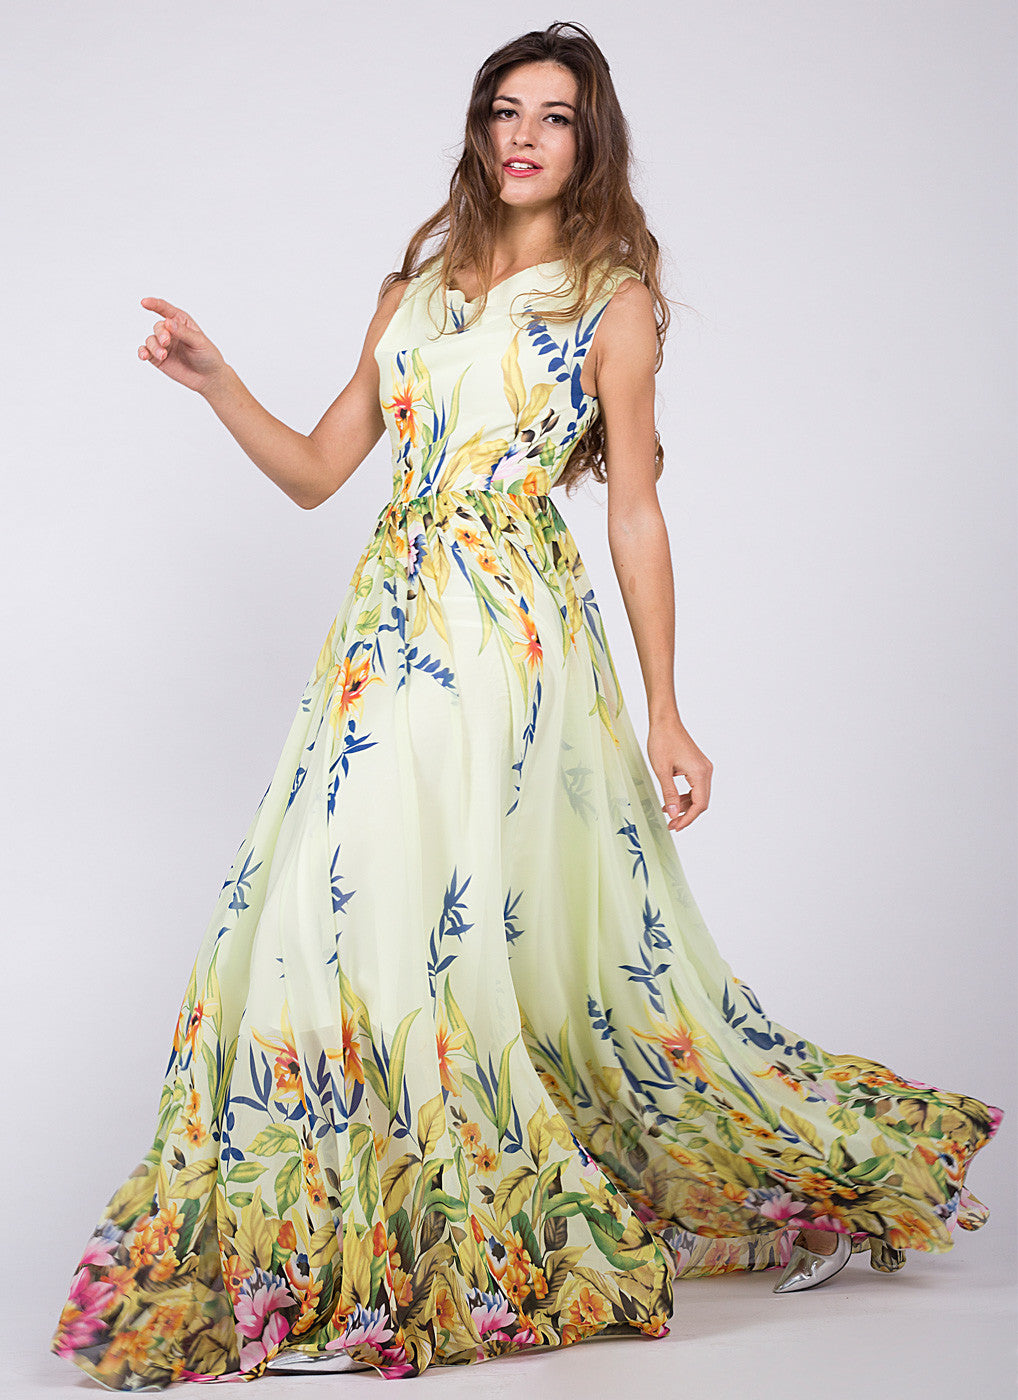 d20fe2c5f2 Light Yellow Sleeveless Floor Length Sundress with Multi-Color Floral  Print/ Yellow Chiffon Floral